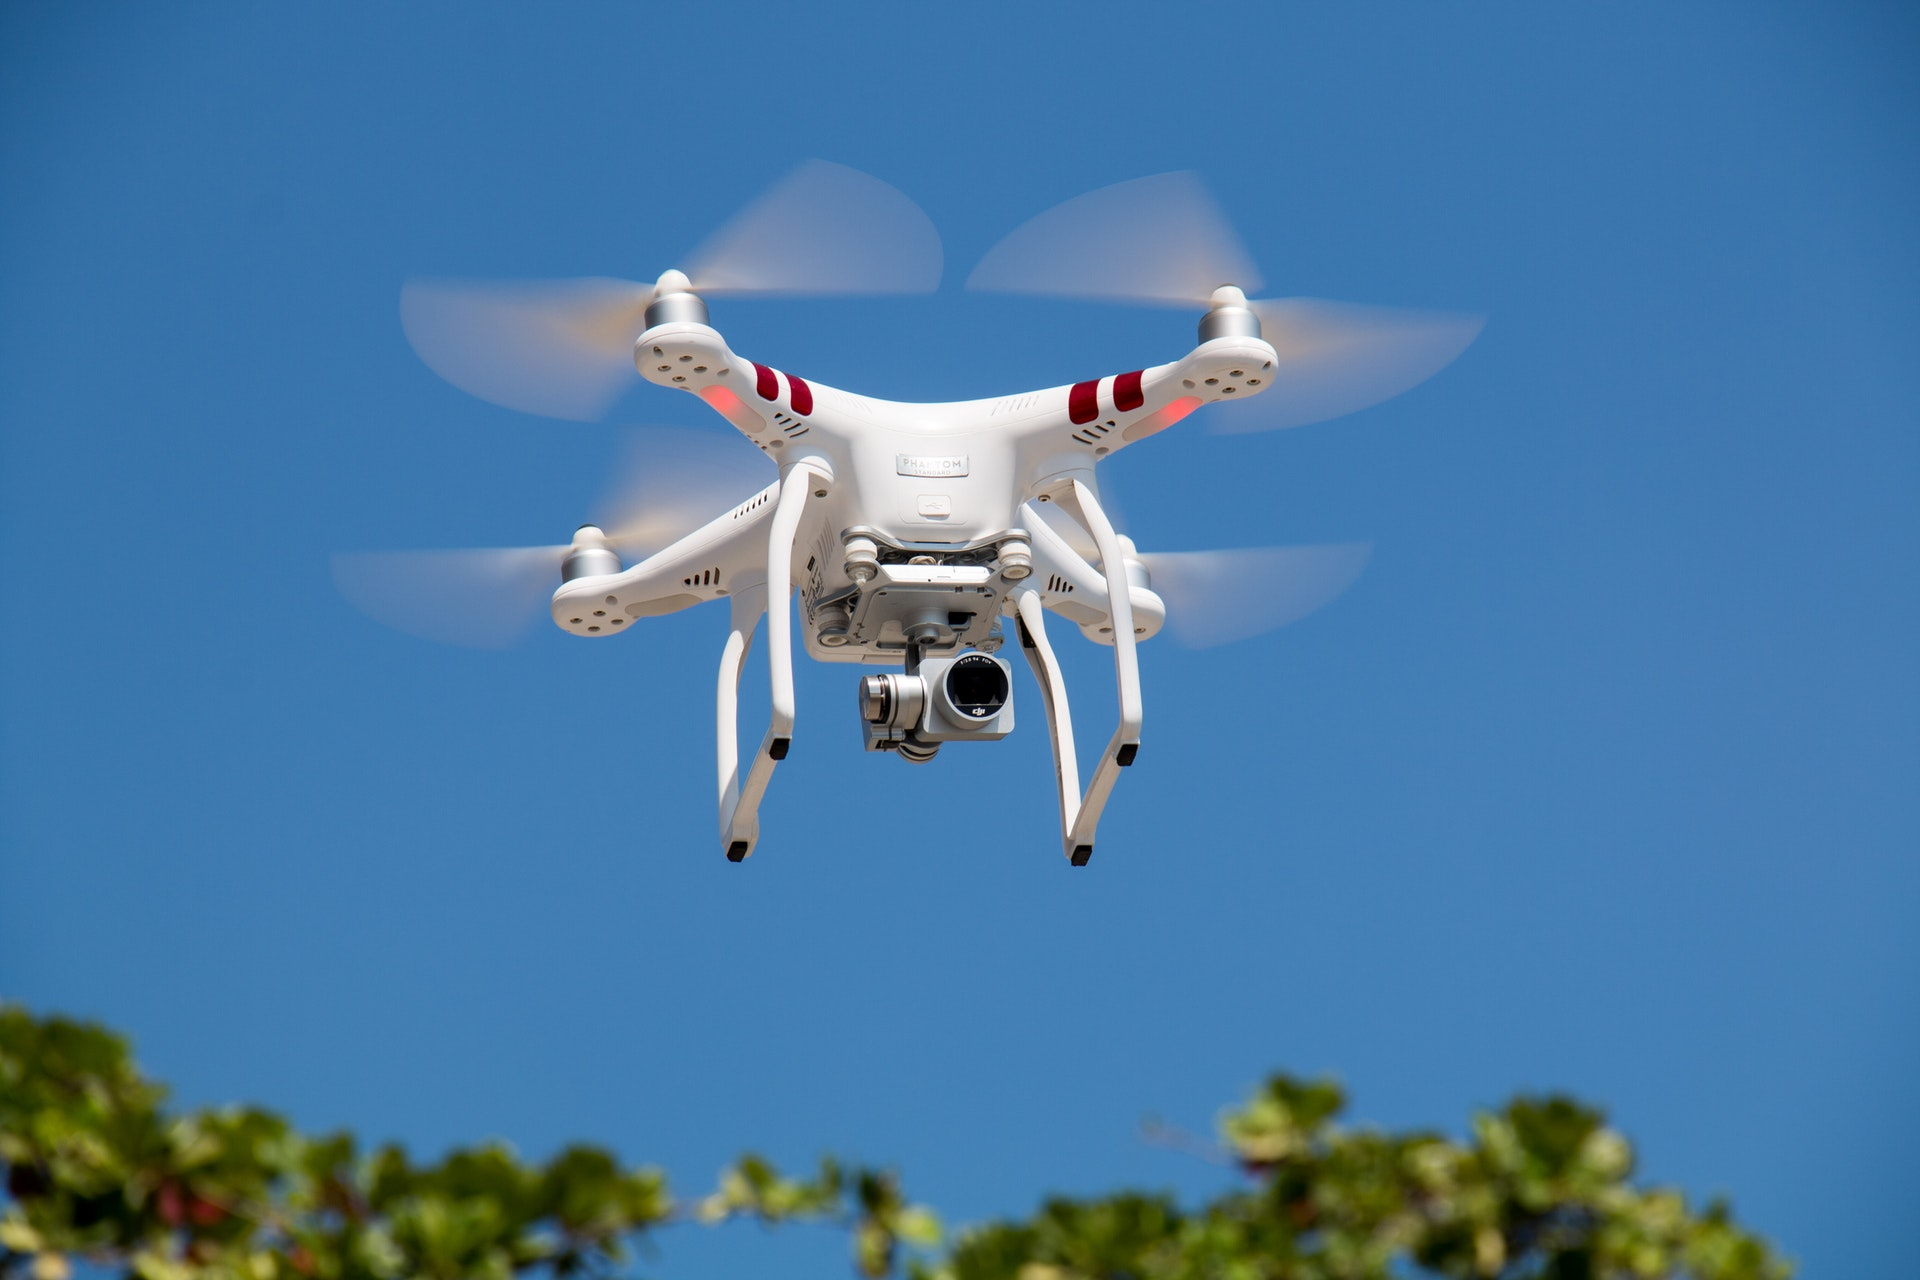 Drone flying taking pictures and video recording real estate property